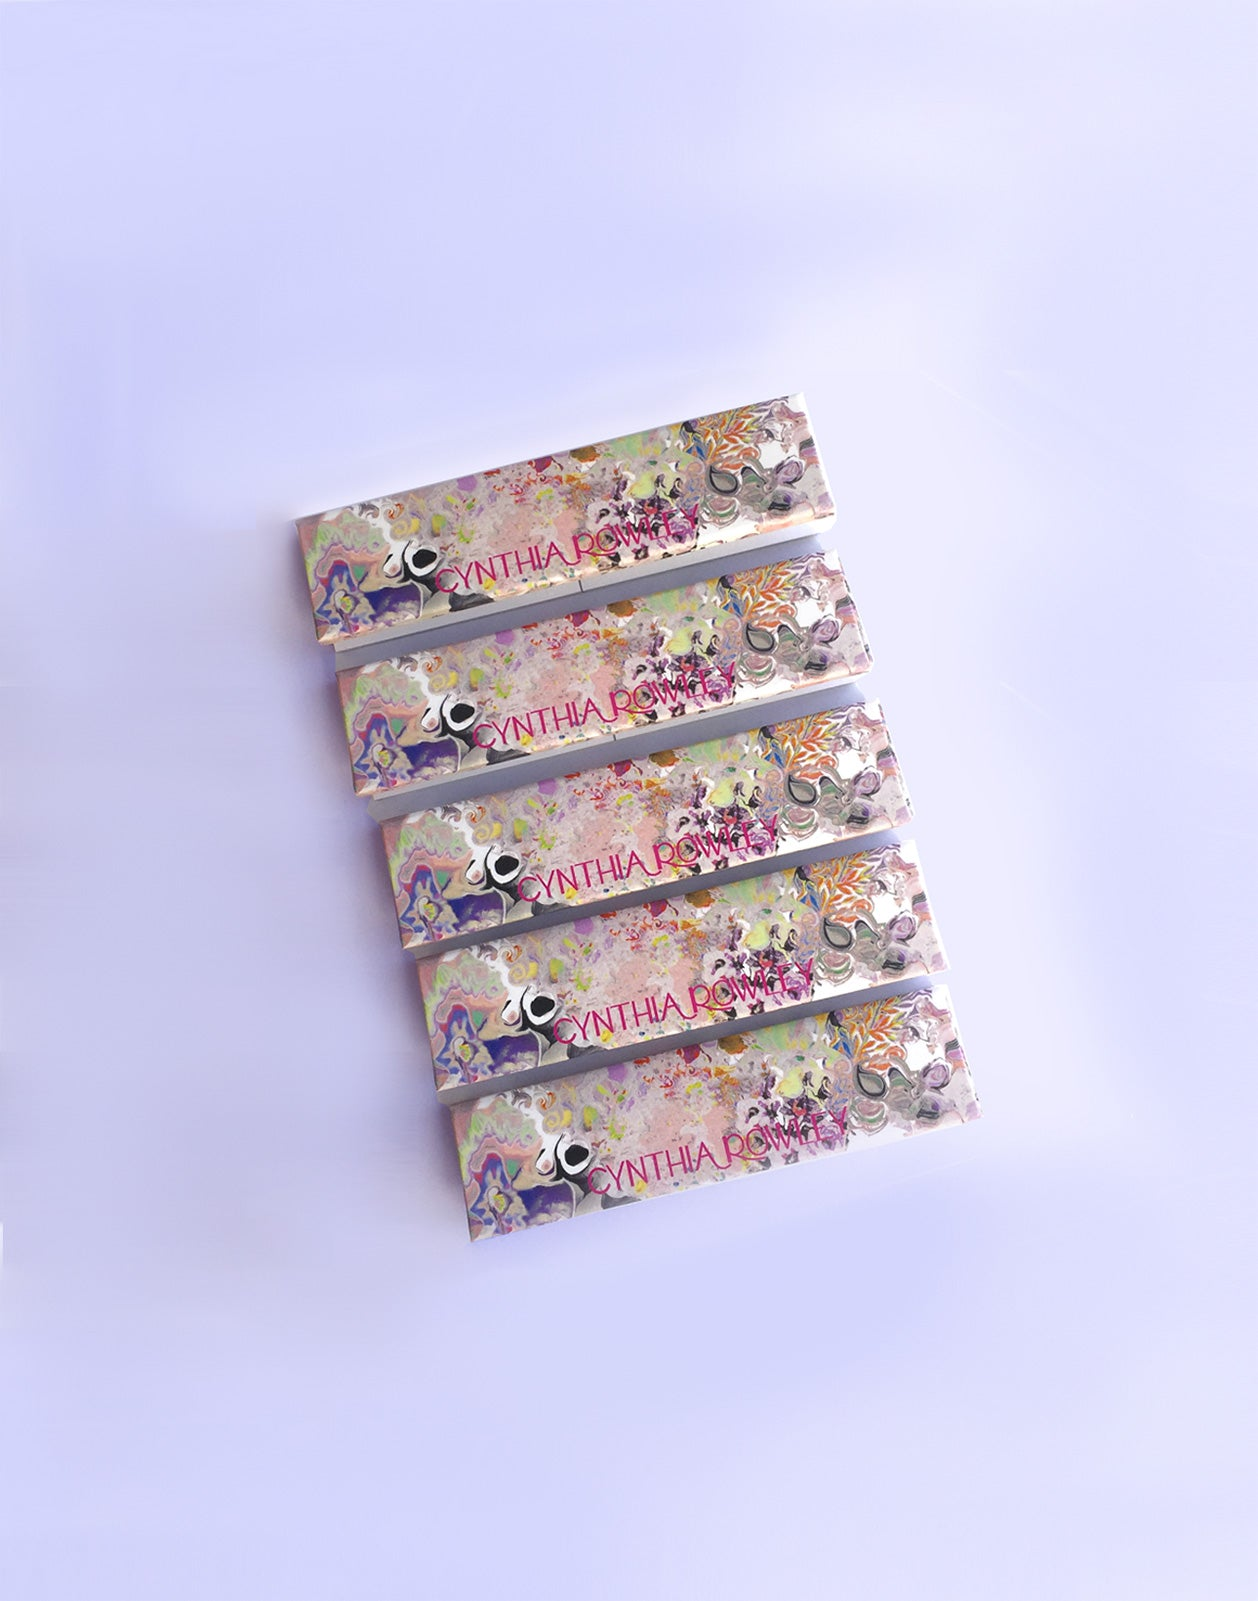 Set of 5 light floral print rolling paper booklets